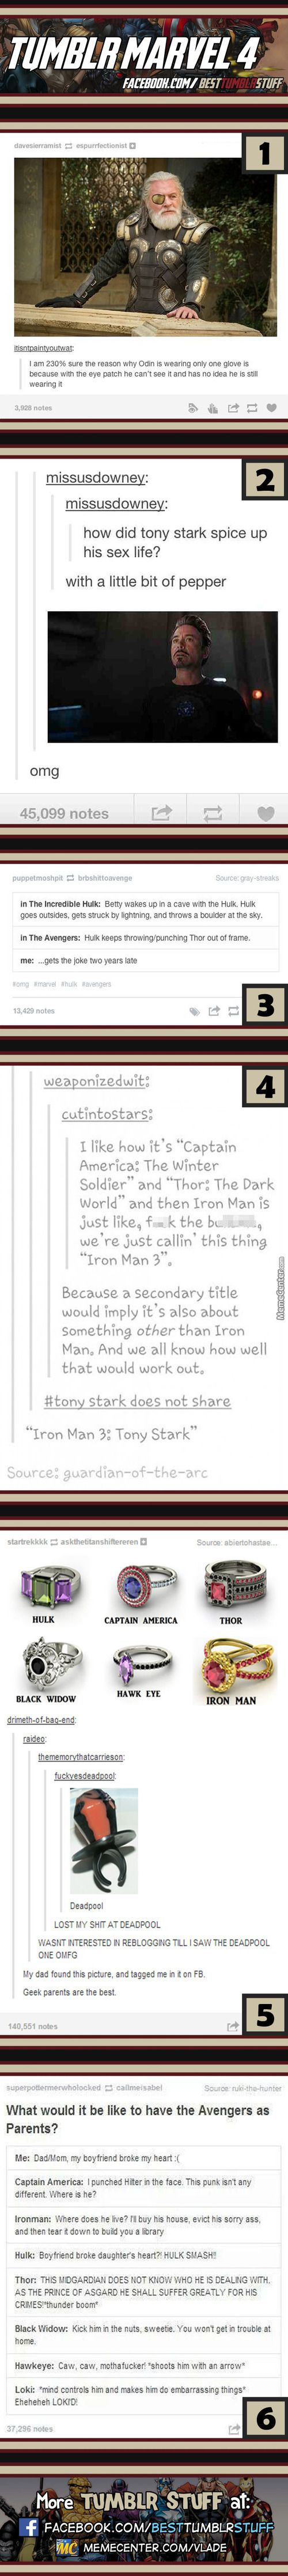 Tumblr Marvel #4. The Thor and Hulk joke is hilarious…how'd I get that two years late?!